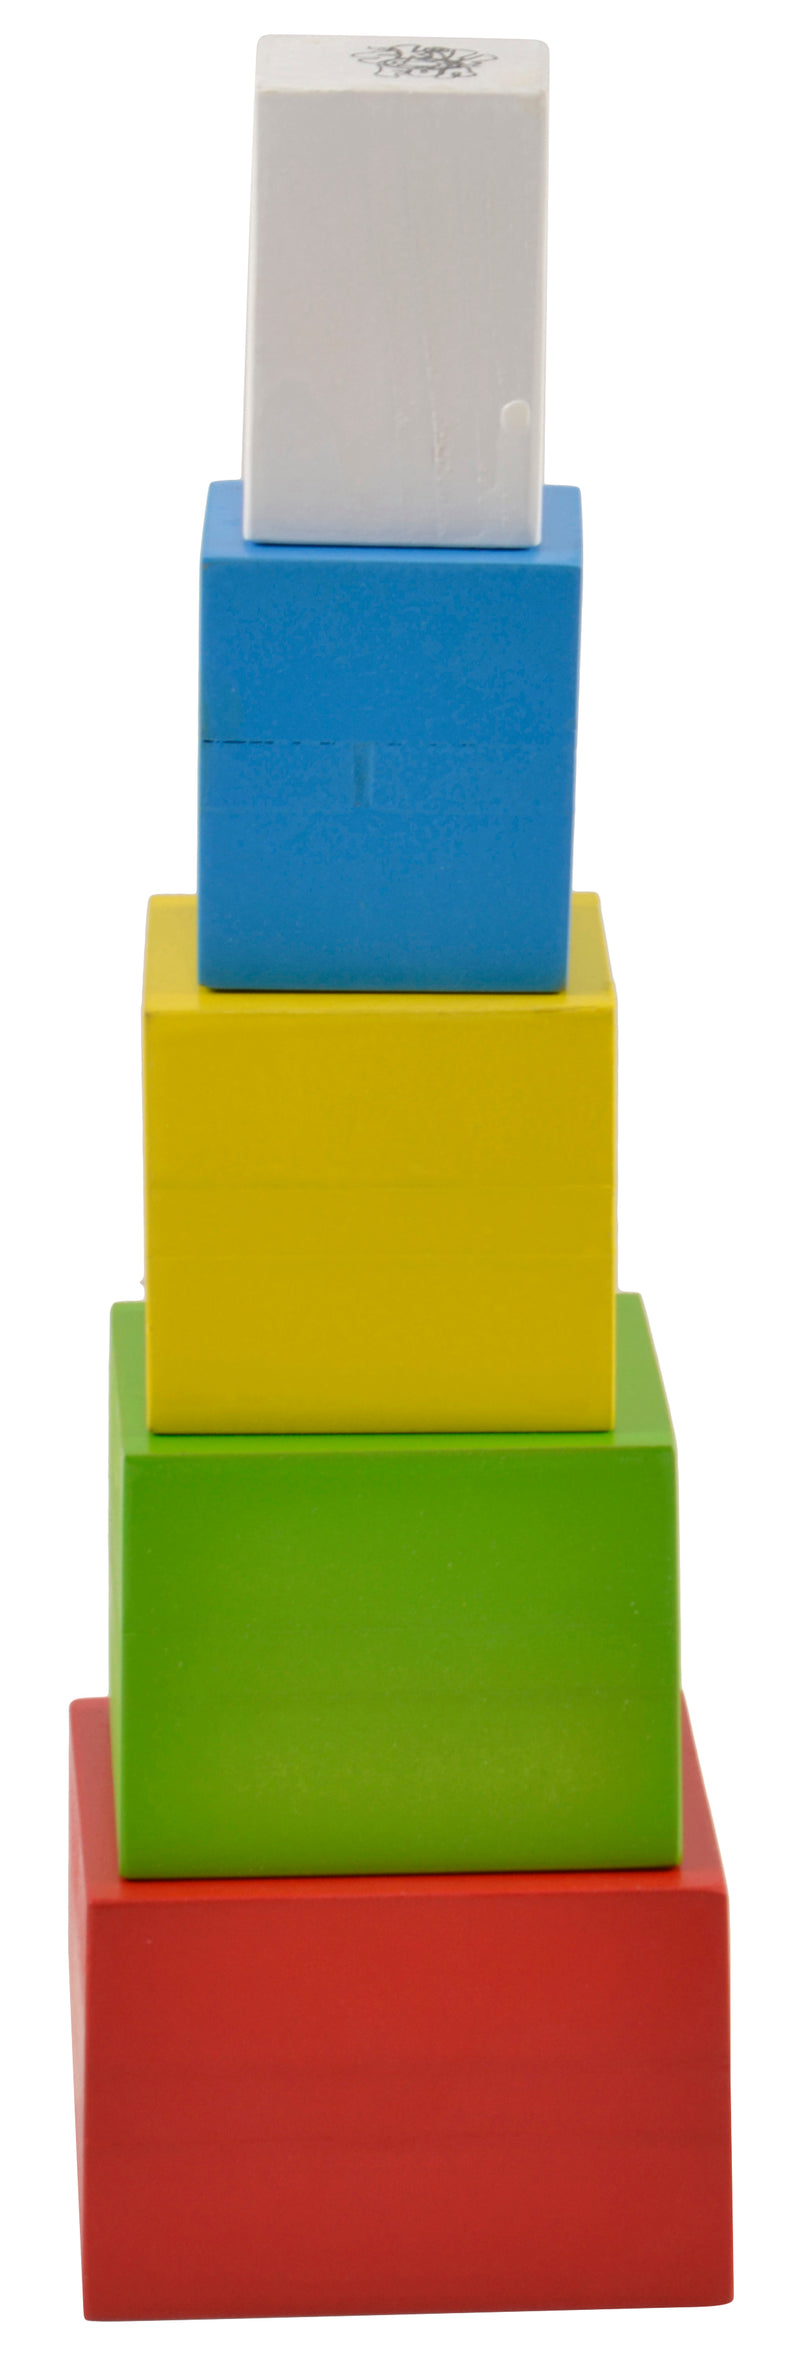 Shape Match Graded Tower-Toys-THE MUM SHOP